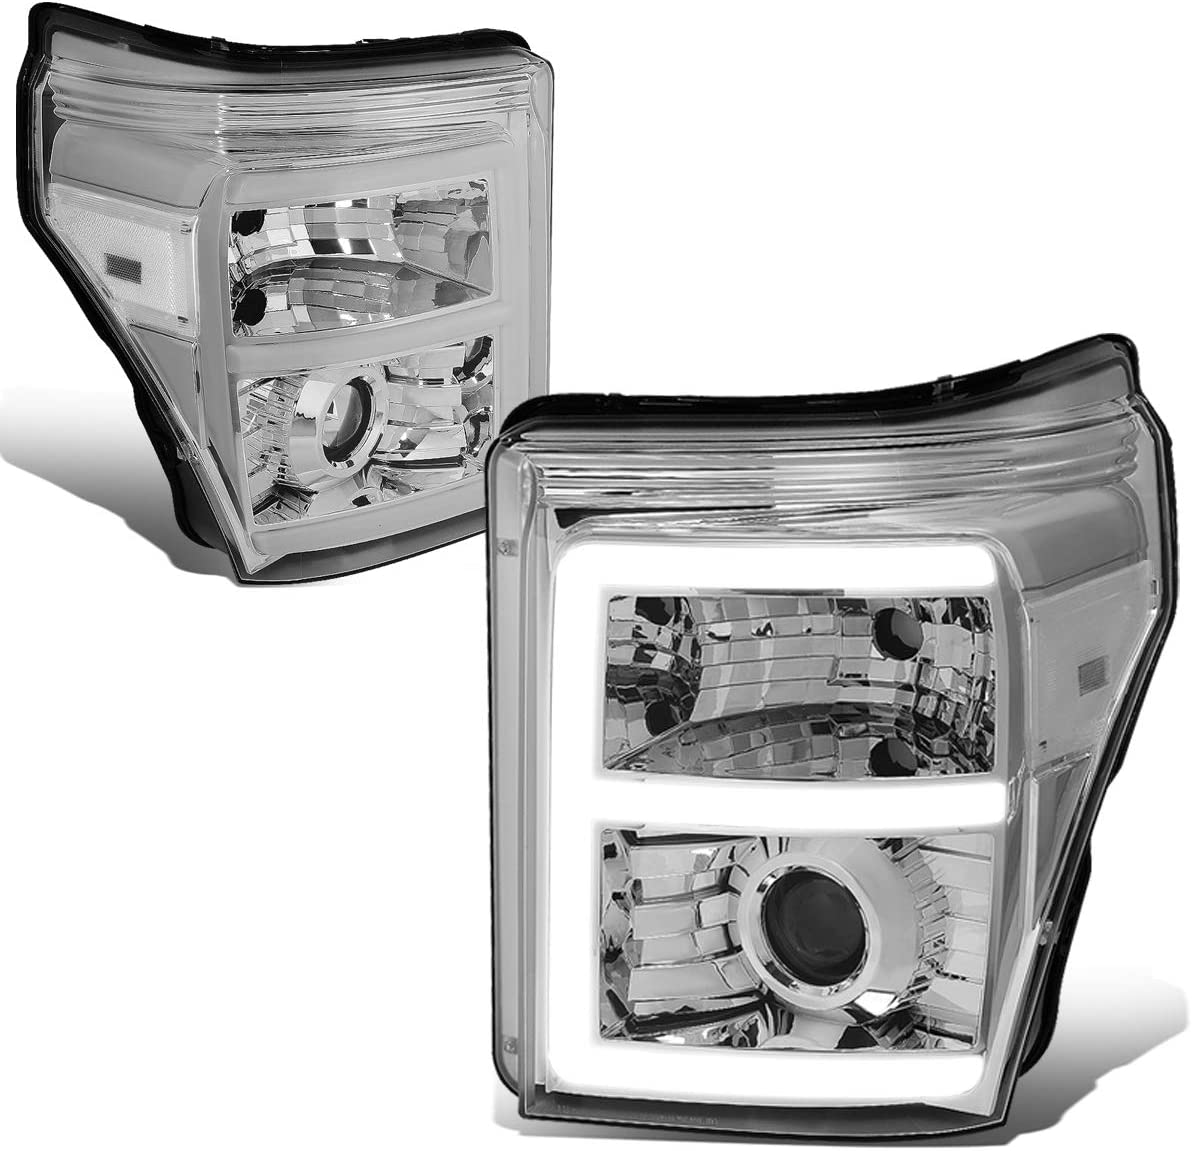 DNA Motoring HL-HPL-LED-FSU13-CH-CL1-T2 Pair LED E-Styling DRL Projector Headlight Lamp Set Replacement,Chrome